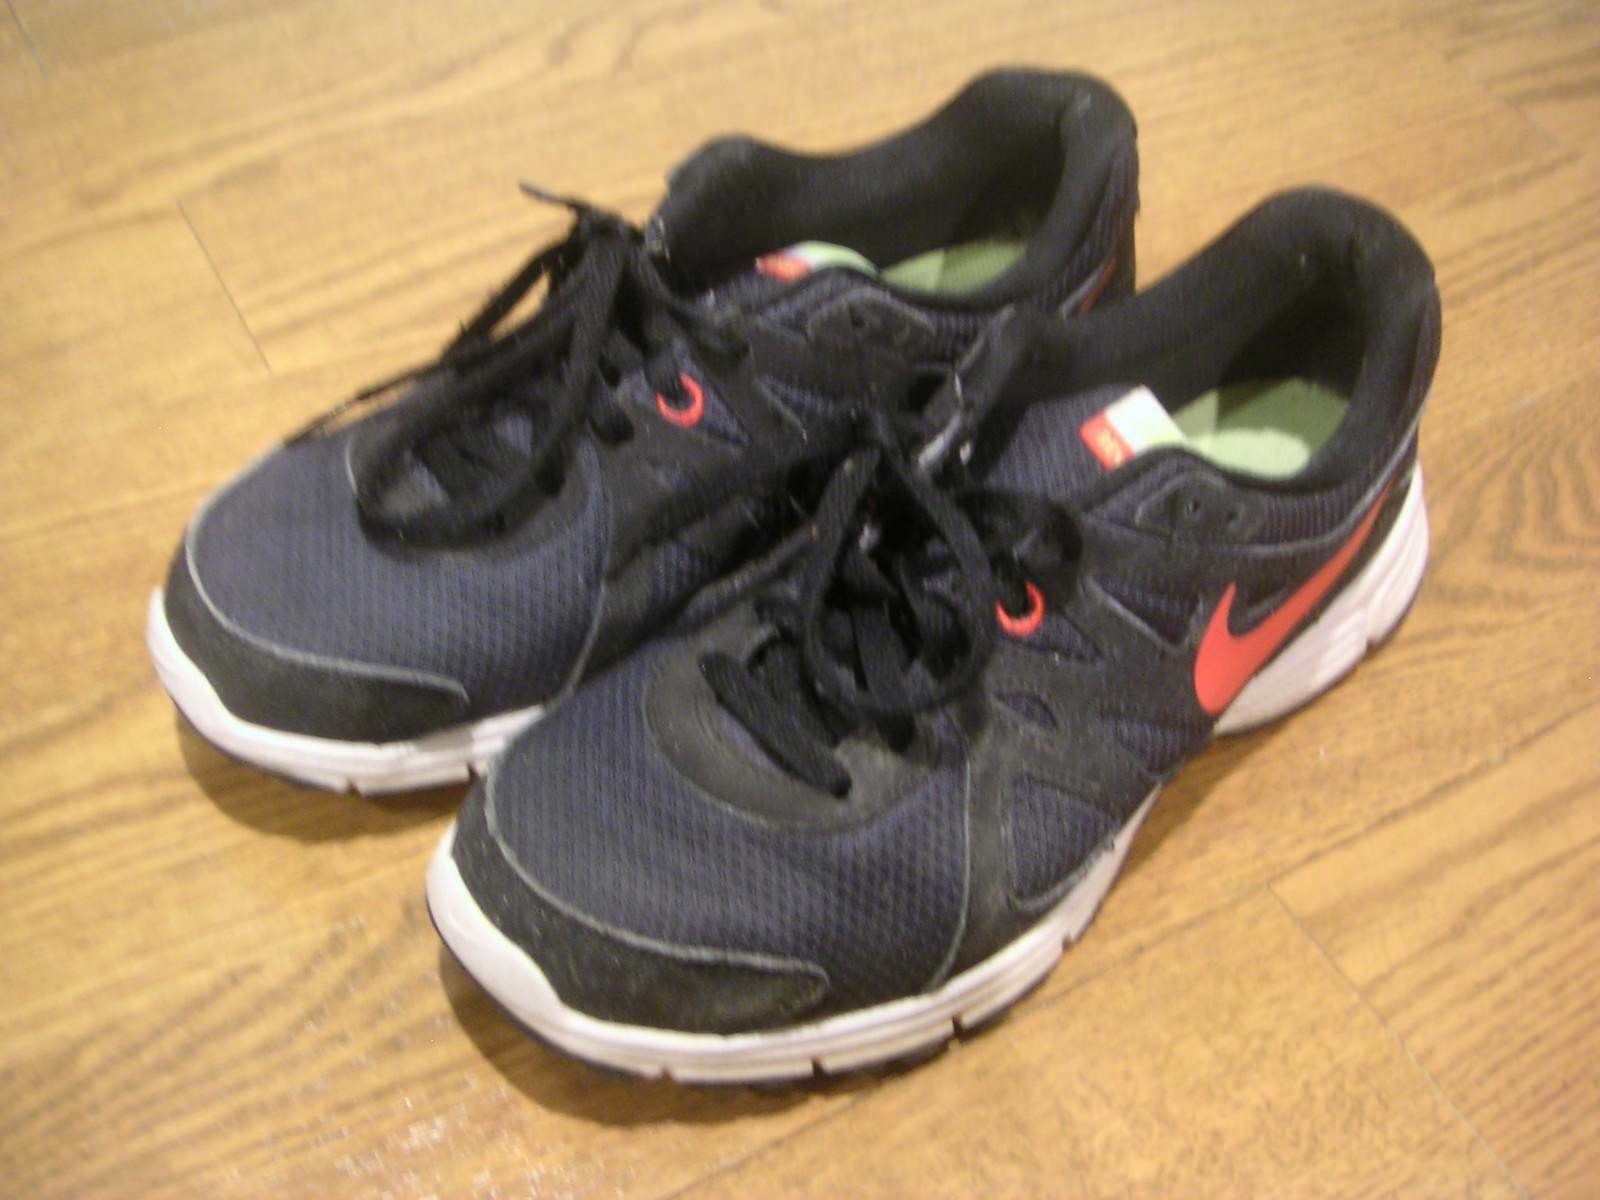 Nike Revolution 2 Special limited time The latest discount shoes for men and women